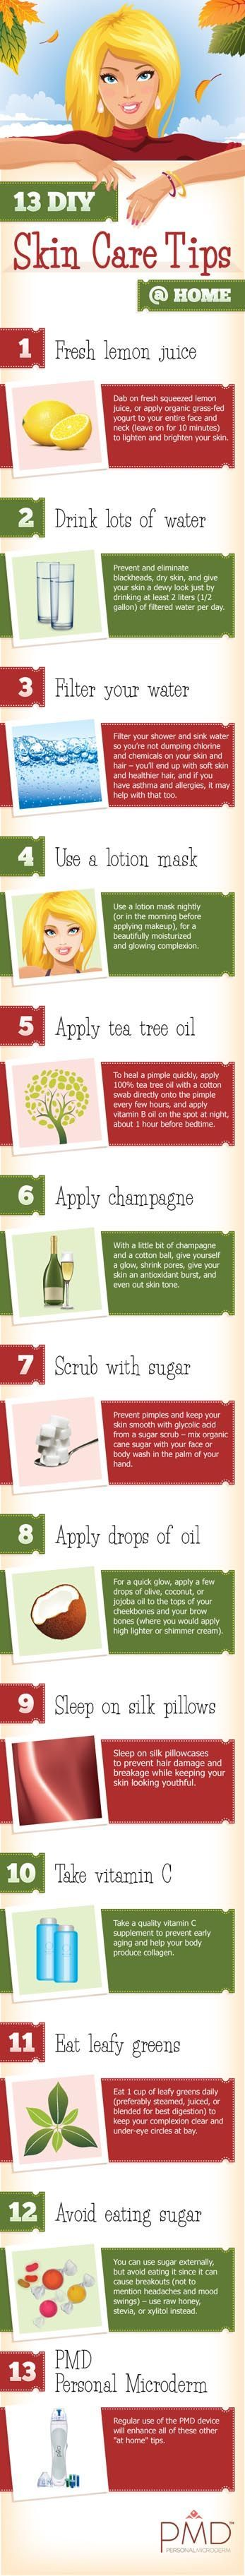 13 DIY Skin Care Tips @ Home! Great for Fall and these cold months ahead of us!